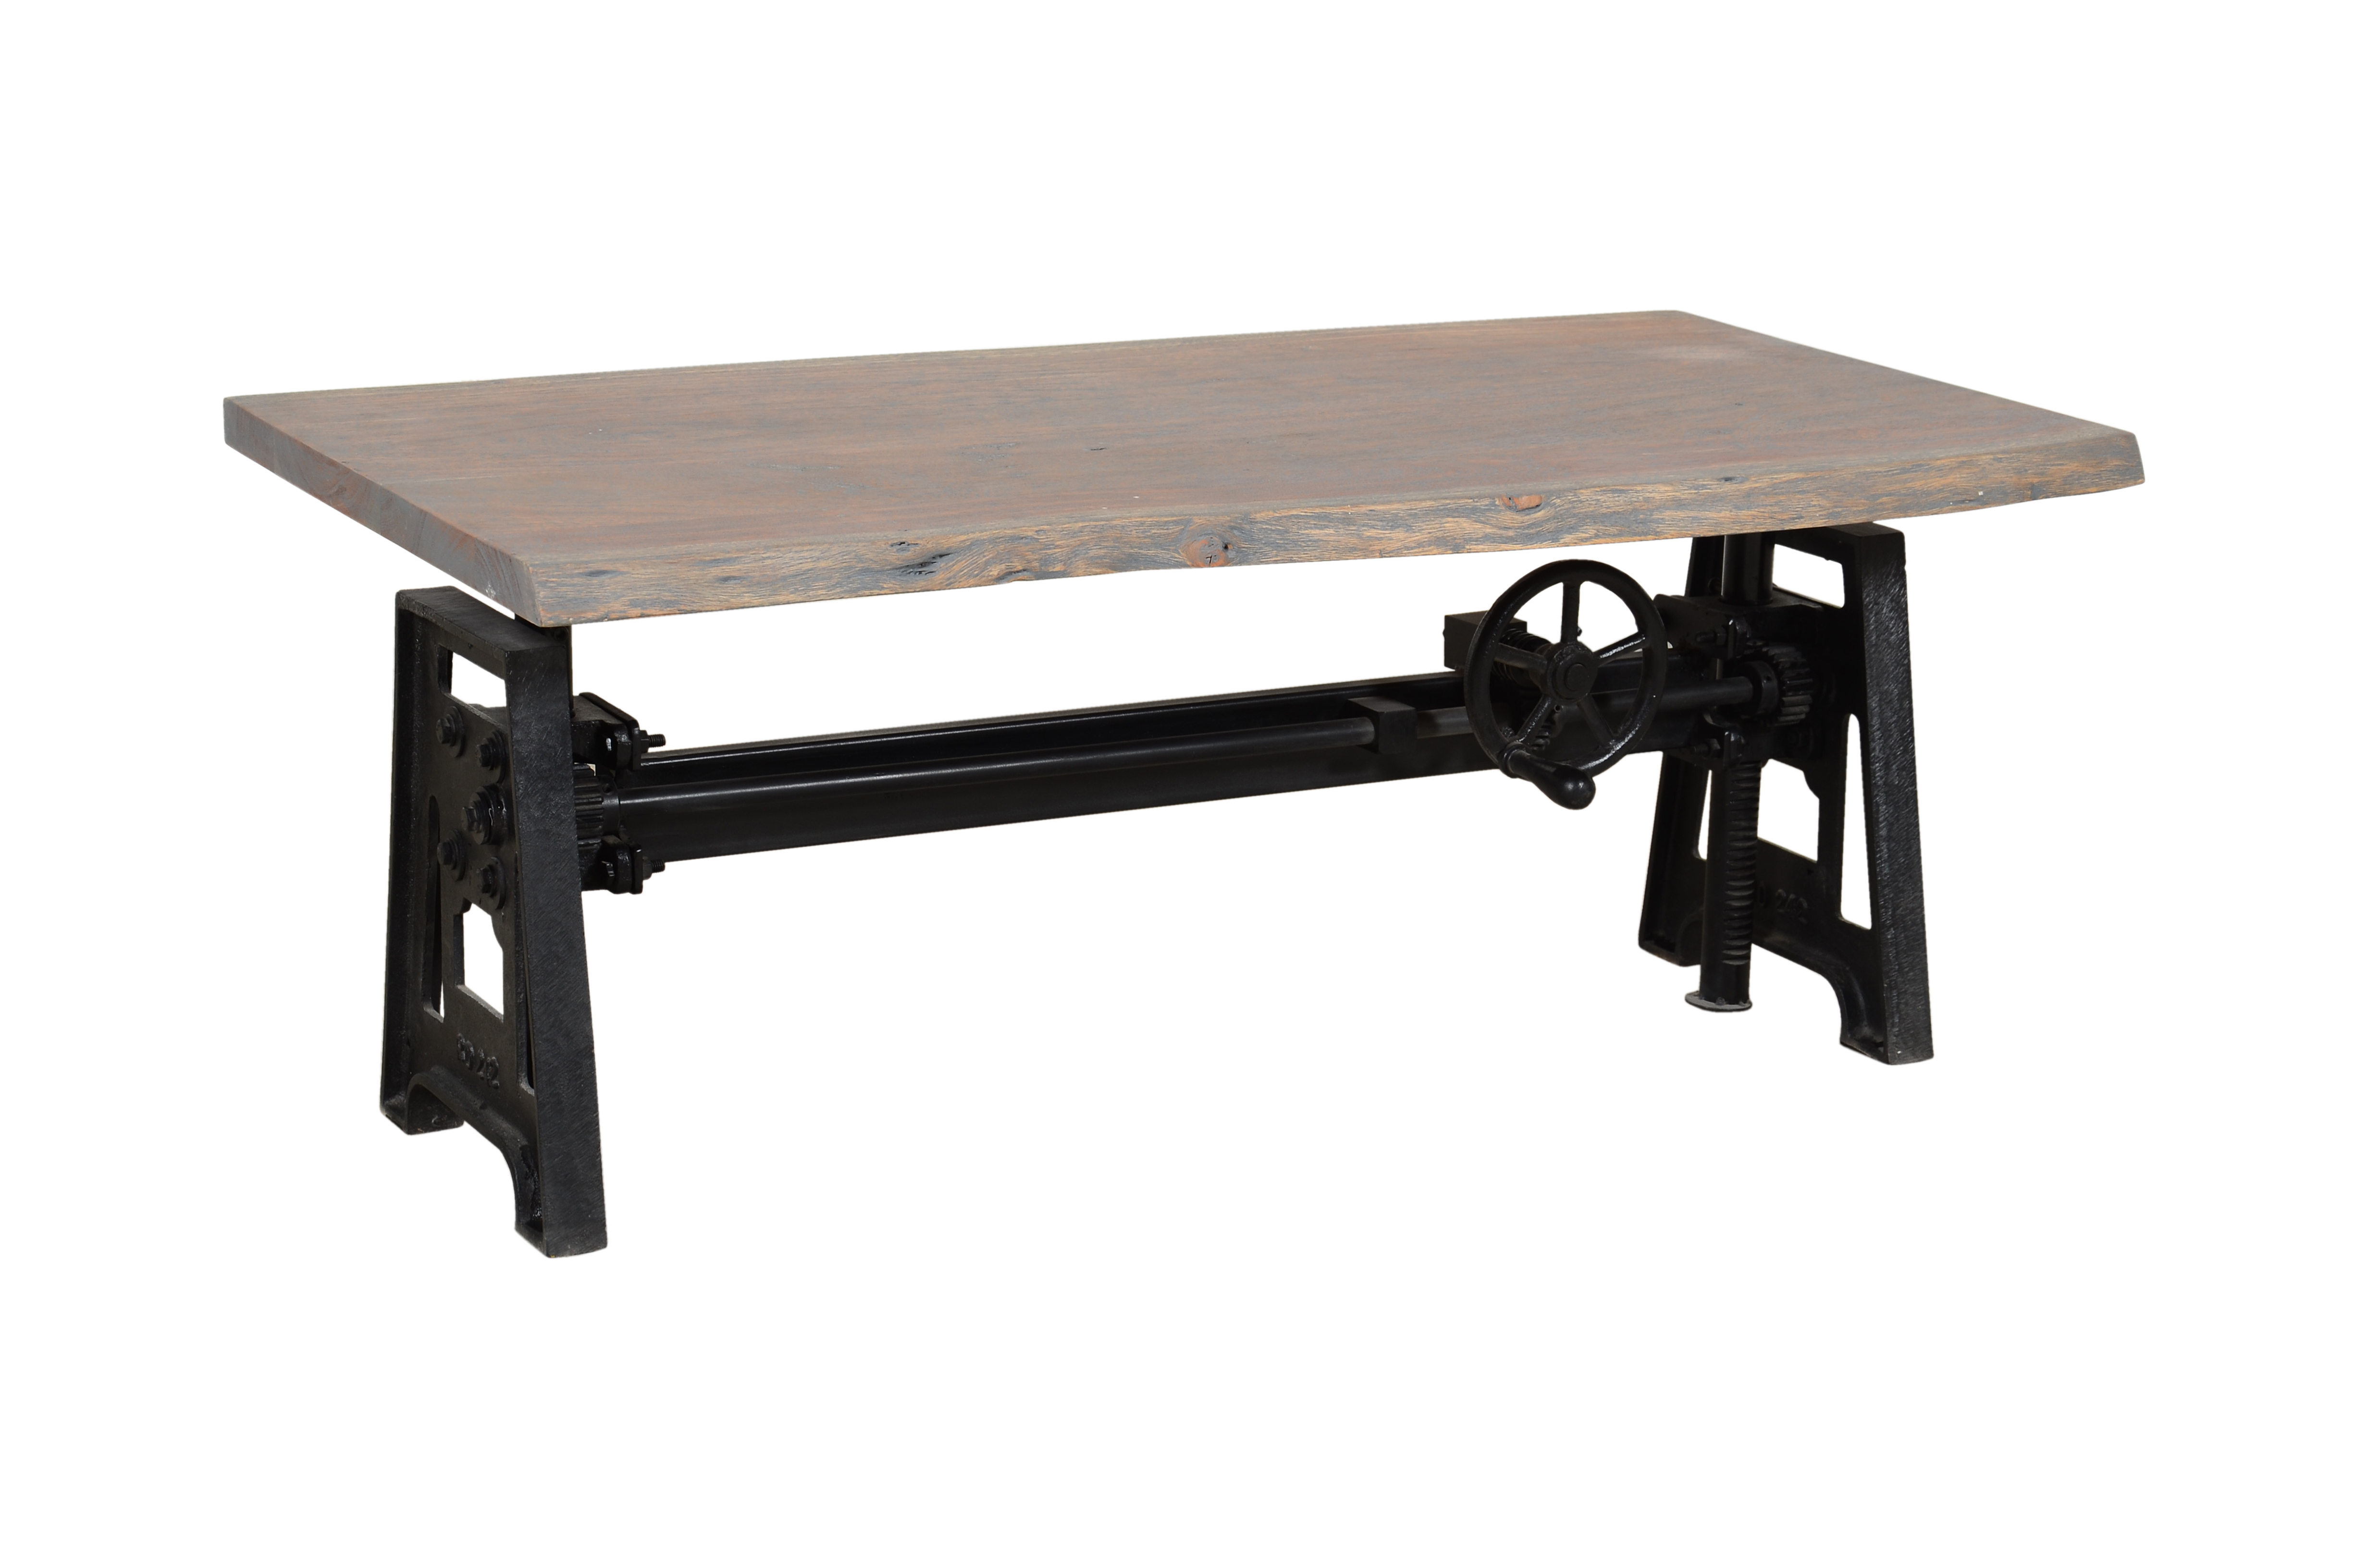 Wrought Iron Dining Table With Wooden Top